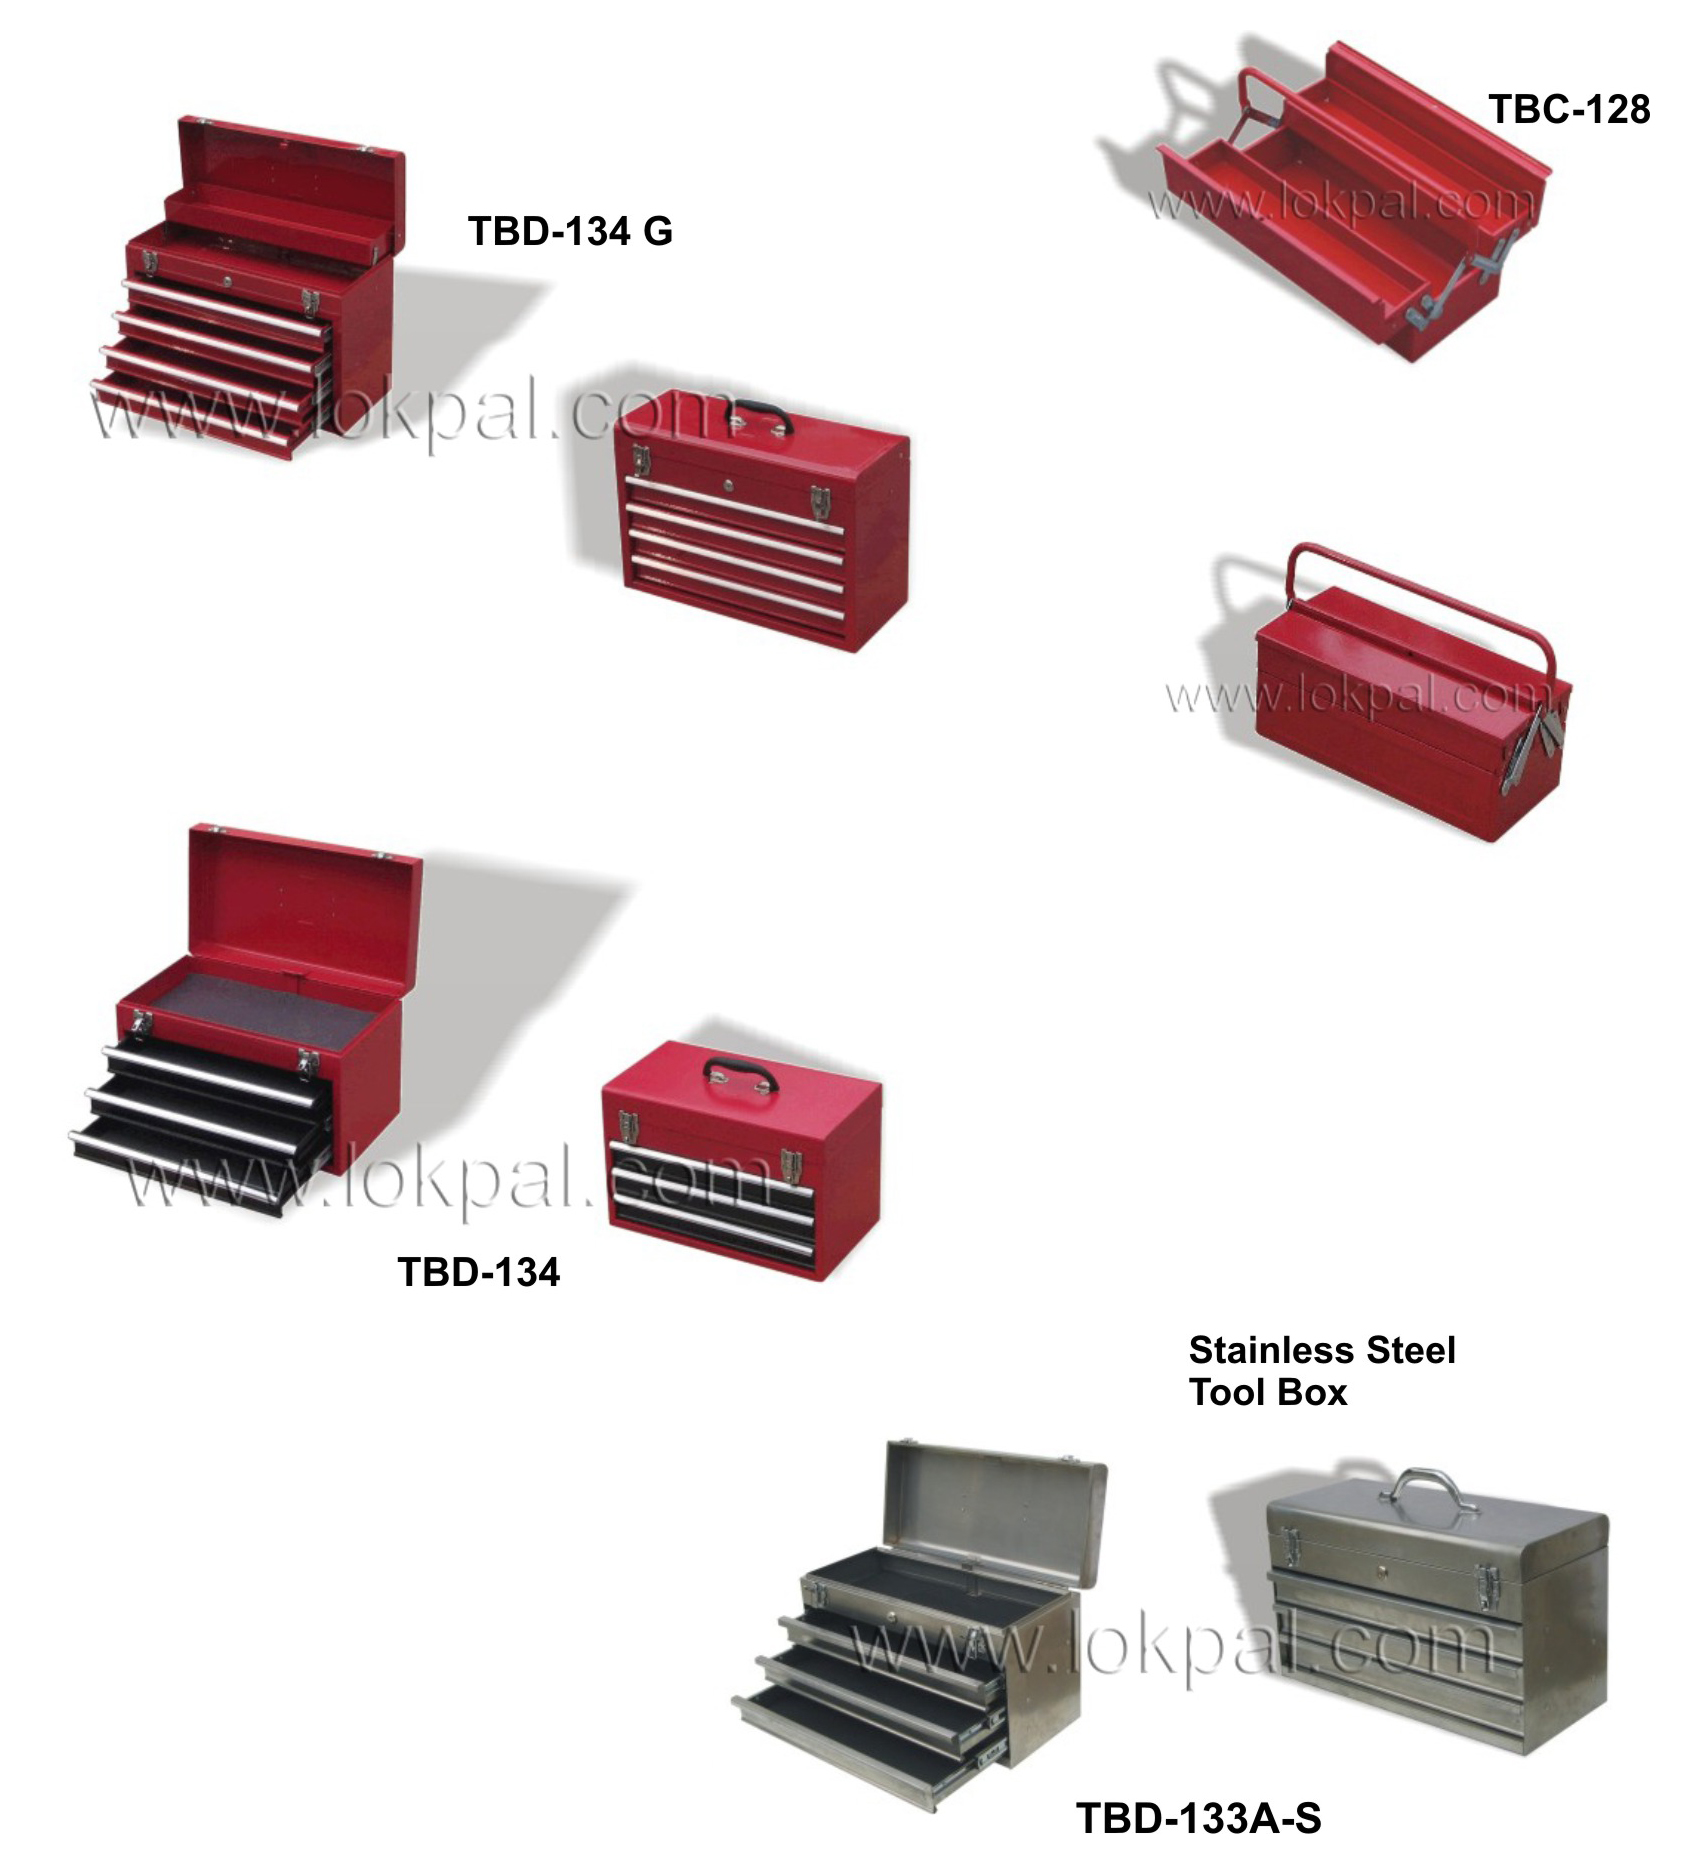 Tool Boxes, Stainless Steel Tool Boxes Manufacturer India